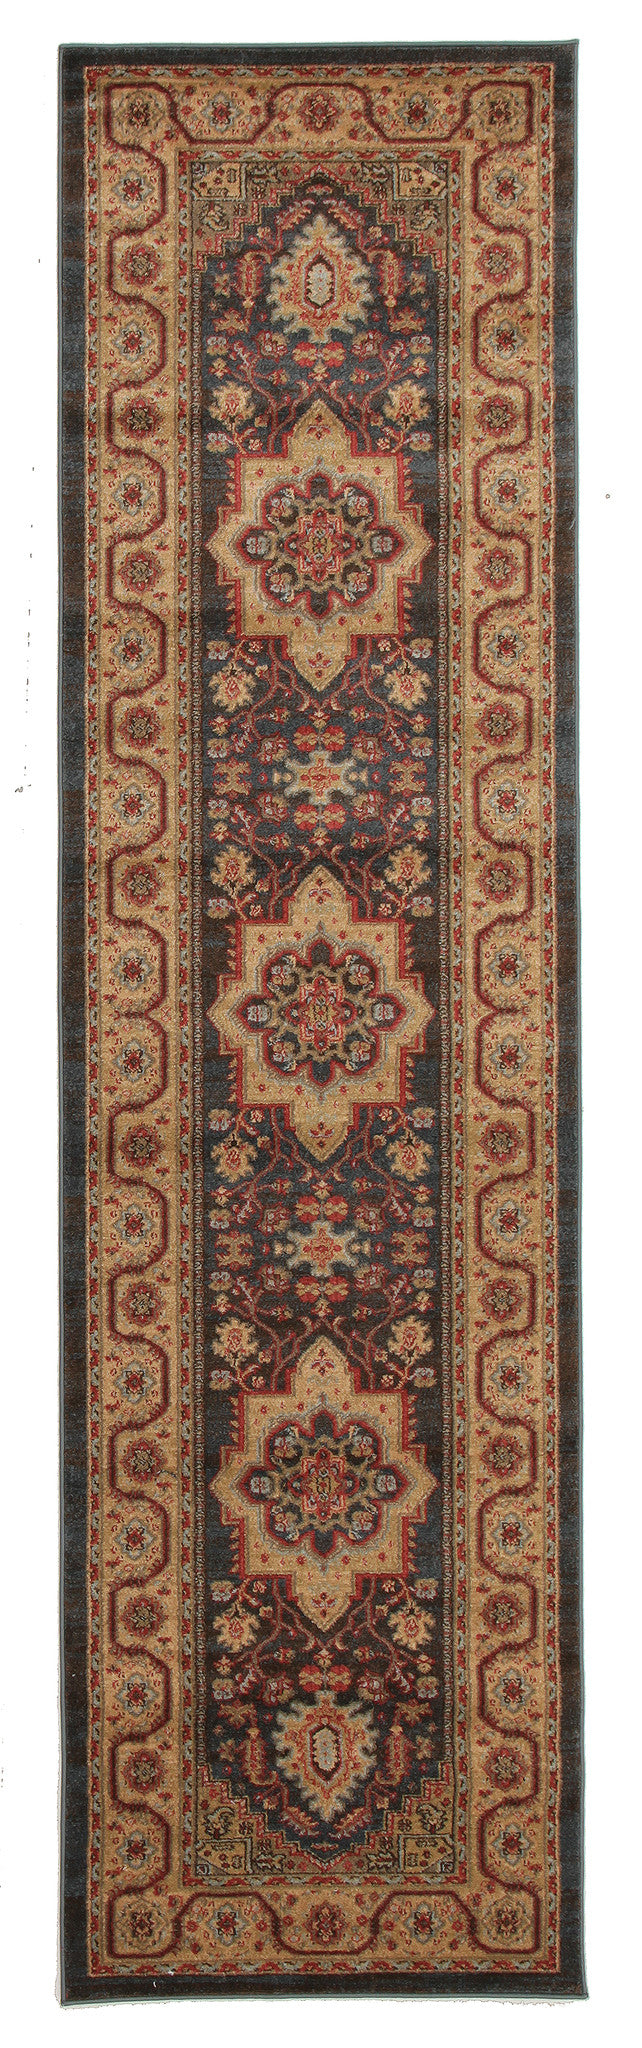 Antique Heriz Design Rug